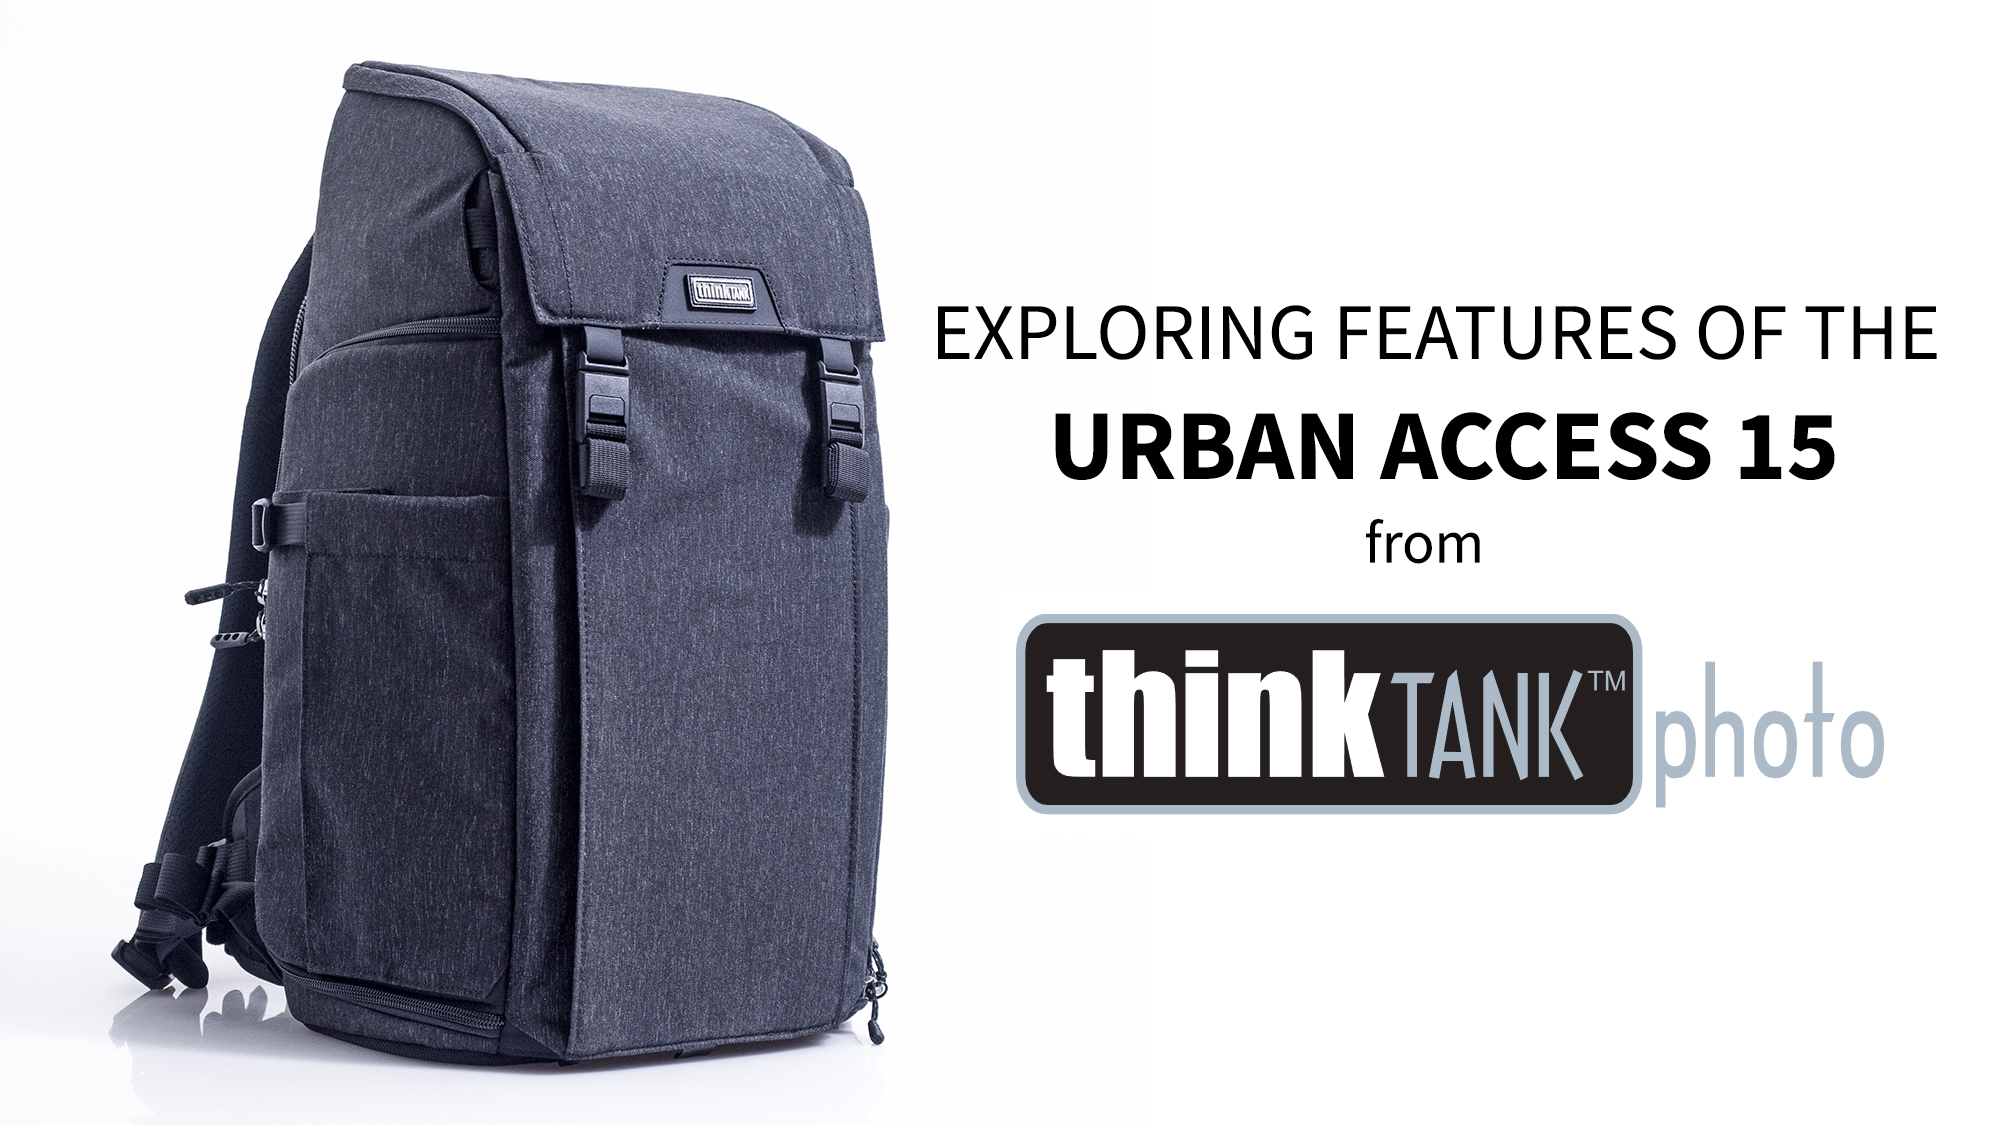 ThinkTank Photo's New Urban Access 15 Camera Bag